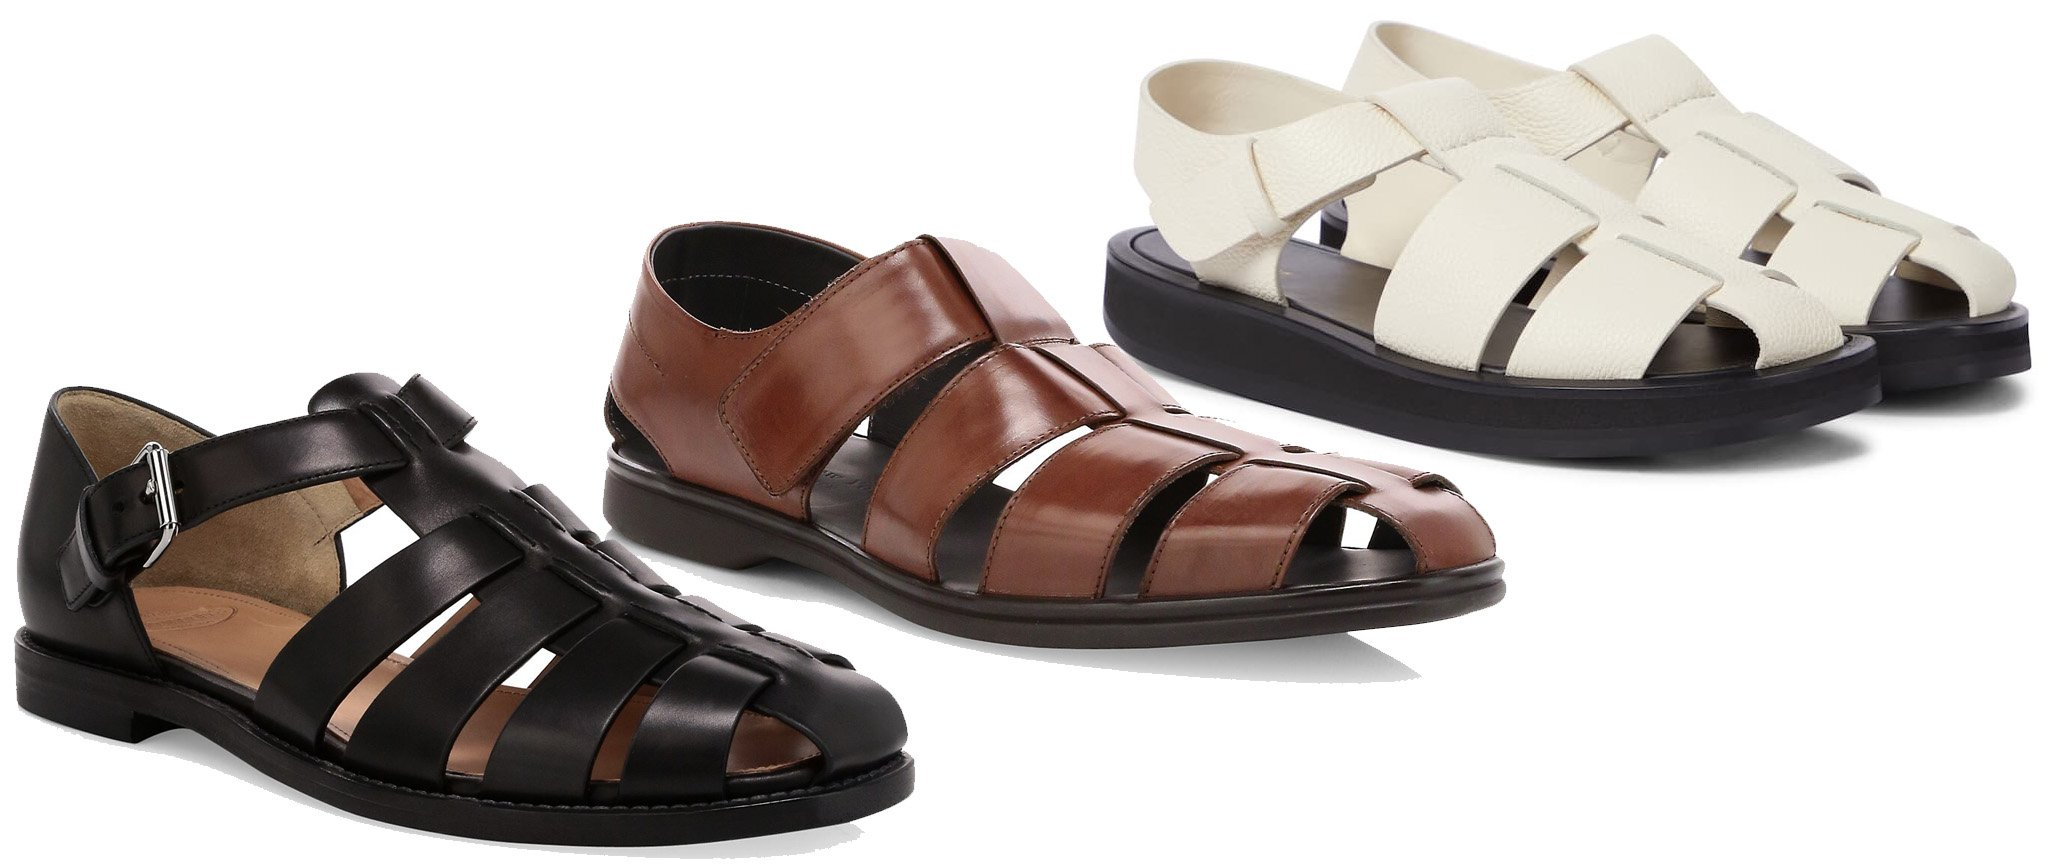 Church's Leather Fisherman Sandal, To Boot New York Santorini Fisherman Sandal, The Row Fisherman Leather Sandal